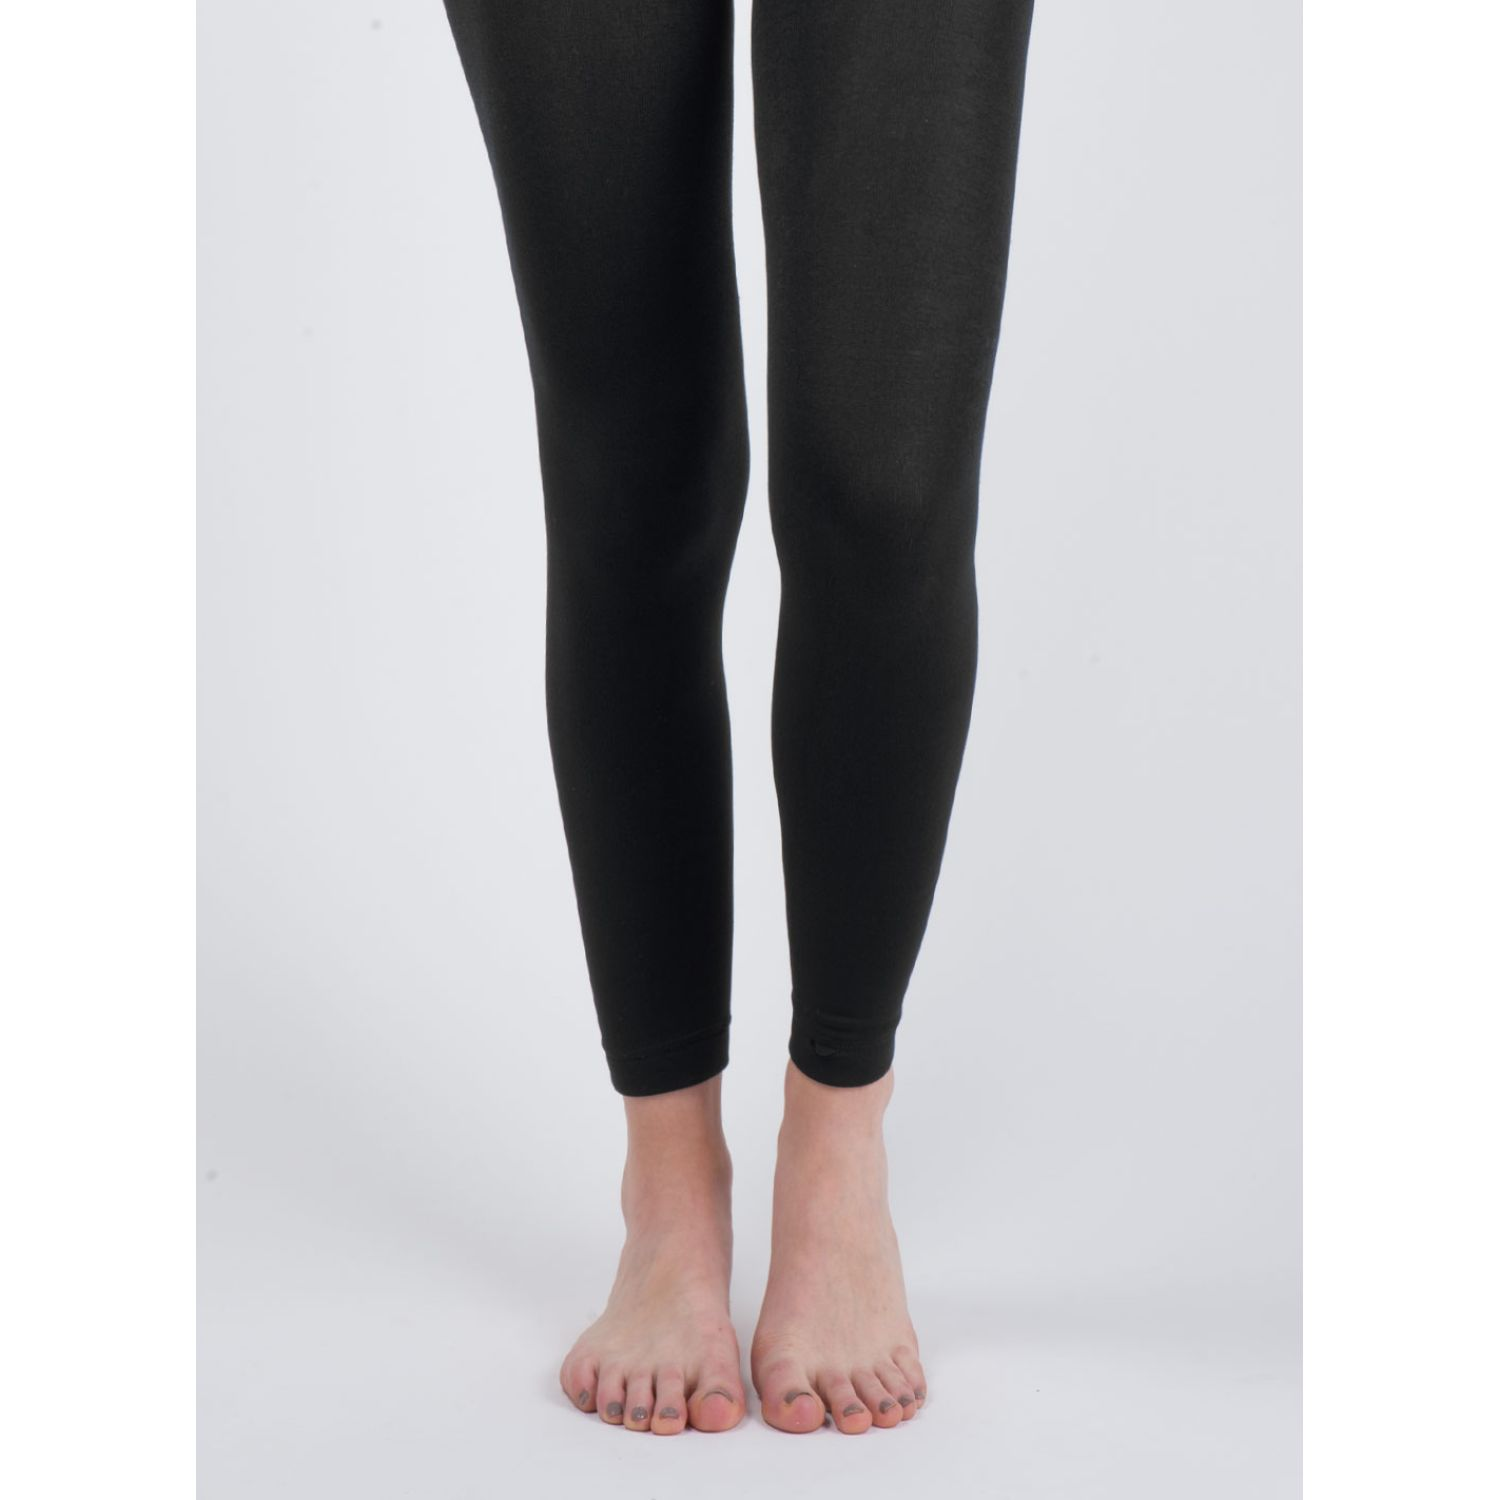 SISI LEGGING ULTRA ABRIGO Negro Leggings